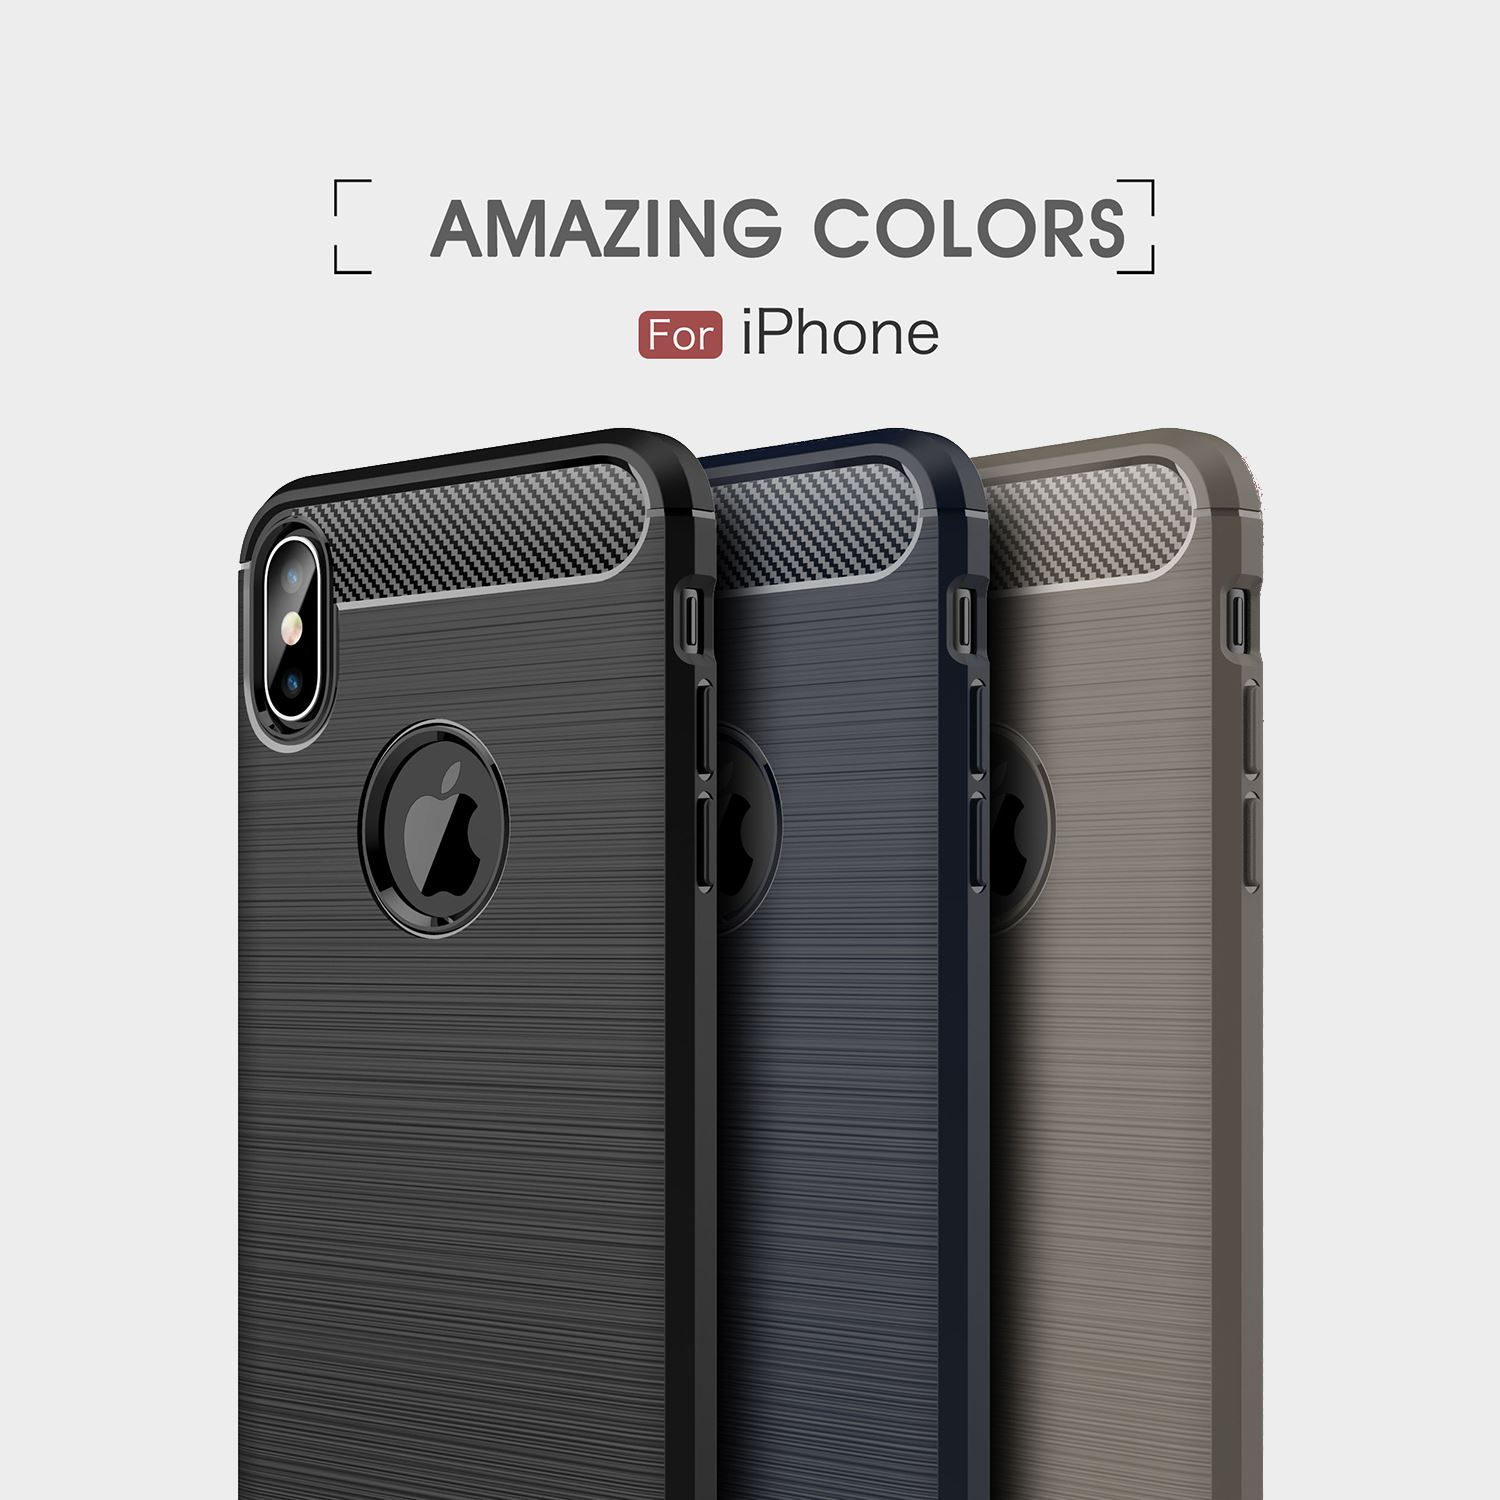 miniature 26 - For Apple iPhone XR Xs Max X 8 7 Plus 6 5 Se 2020 Case Cover New Phone Proof